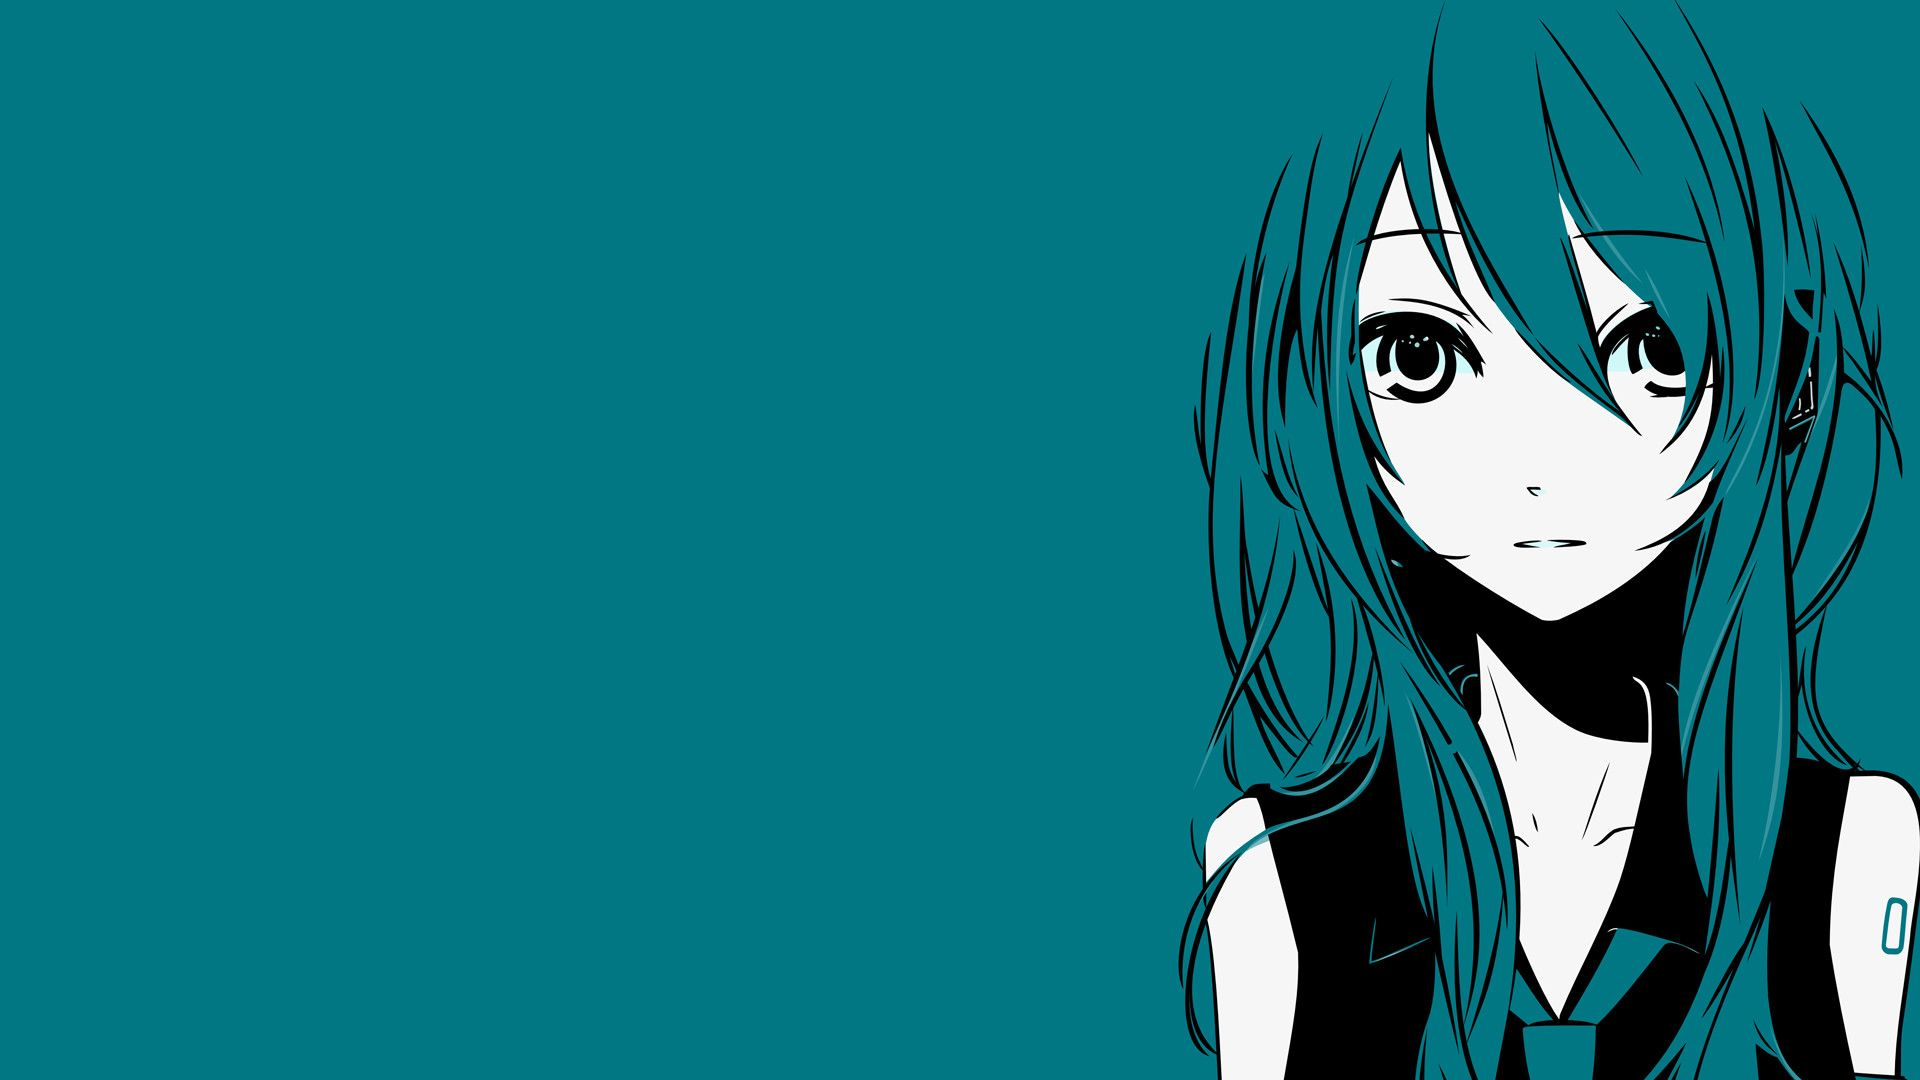 anime wallpapers 1920a—1080 53 wallpapers